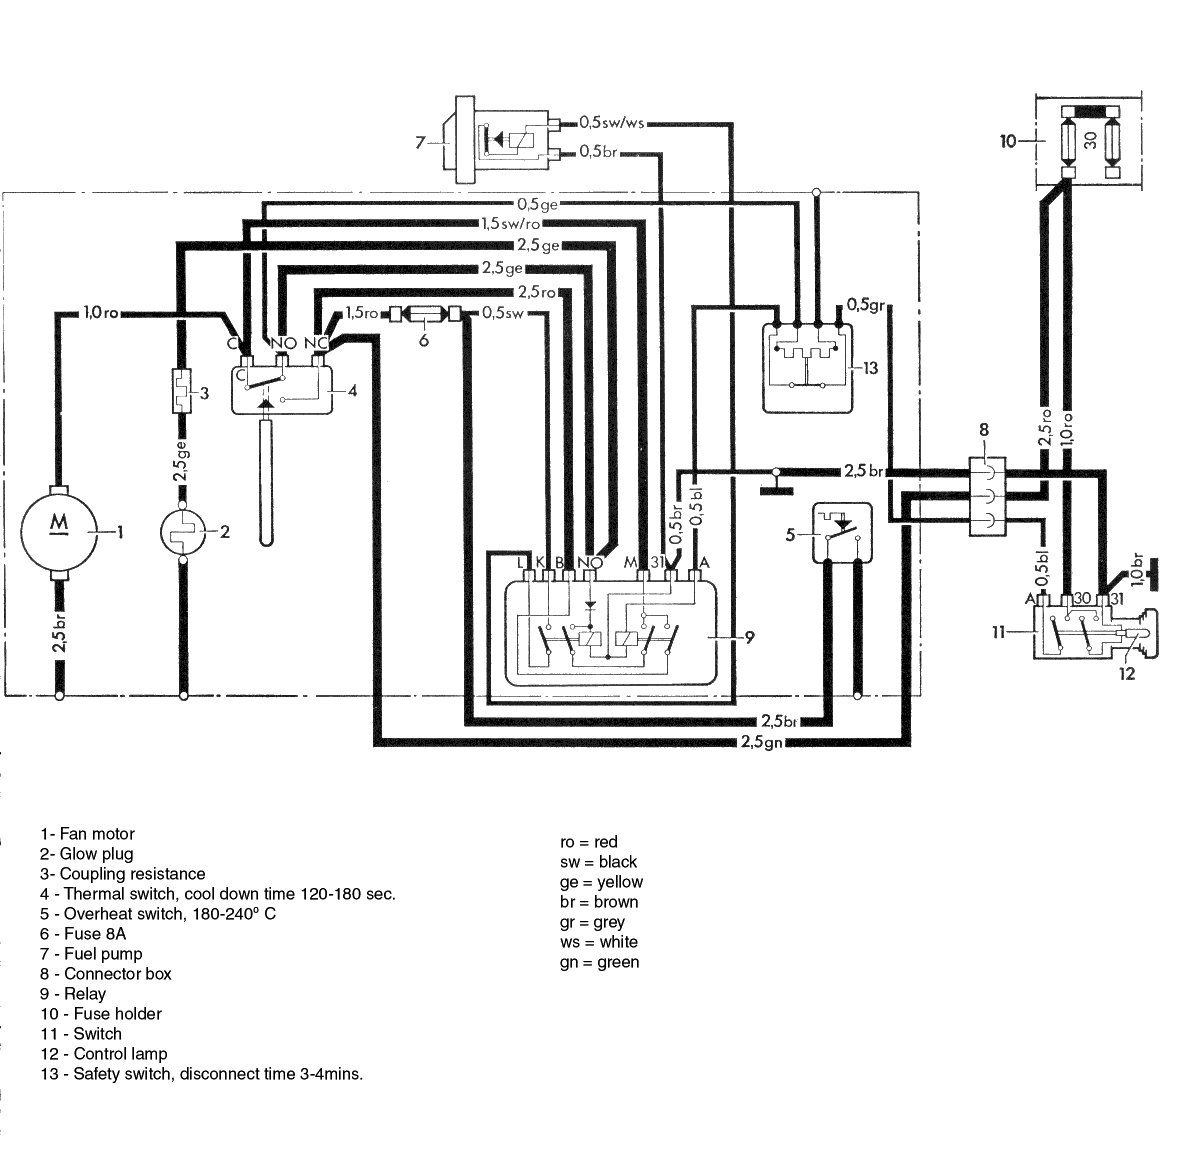 BN2_wiring thesamba com vw eberspacher gas heater installation manual bn gas heater wiring diagram at crackthecode.co